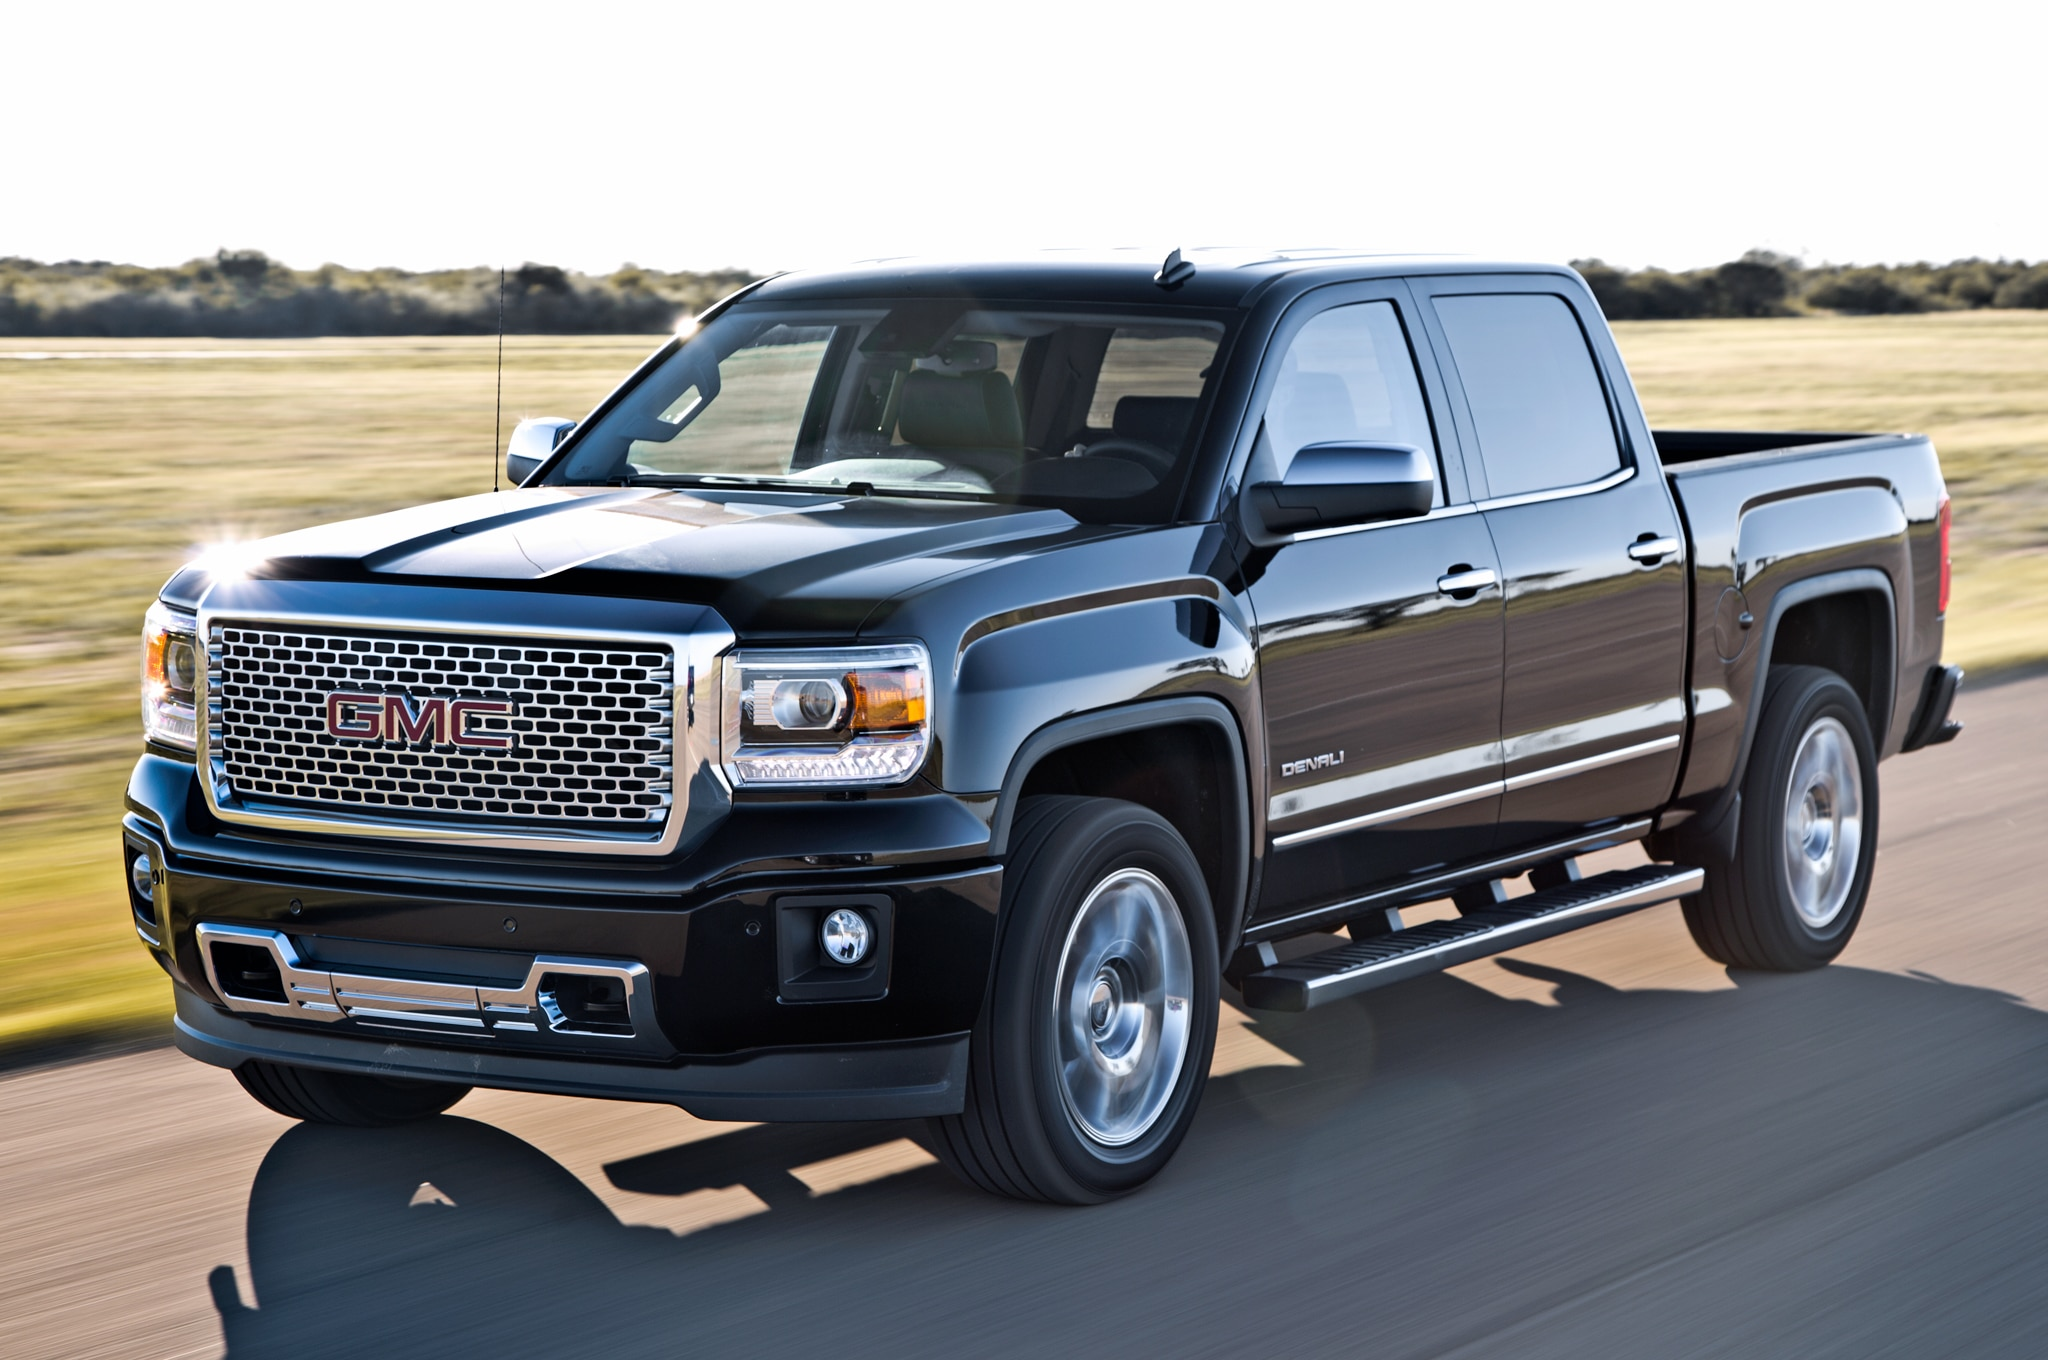 hight resolution of 2014 gmc sierra denali 1500 front three quarters view in motion